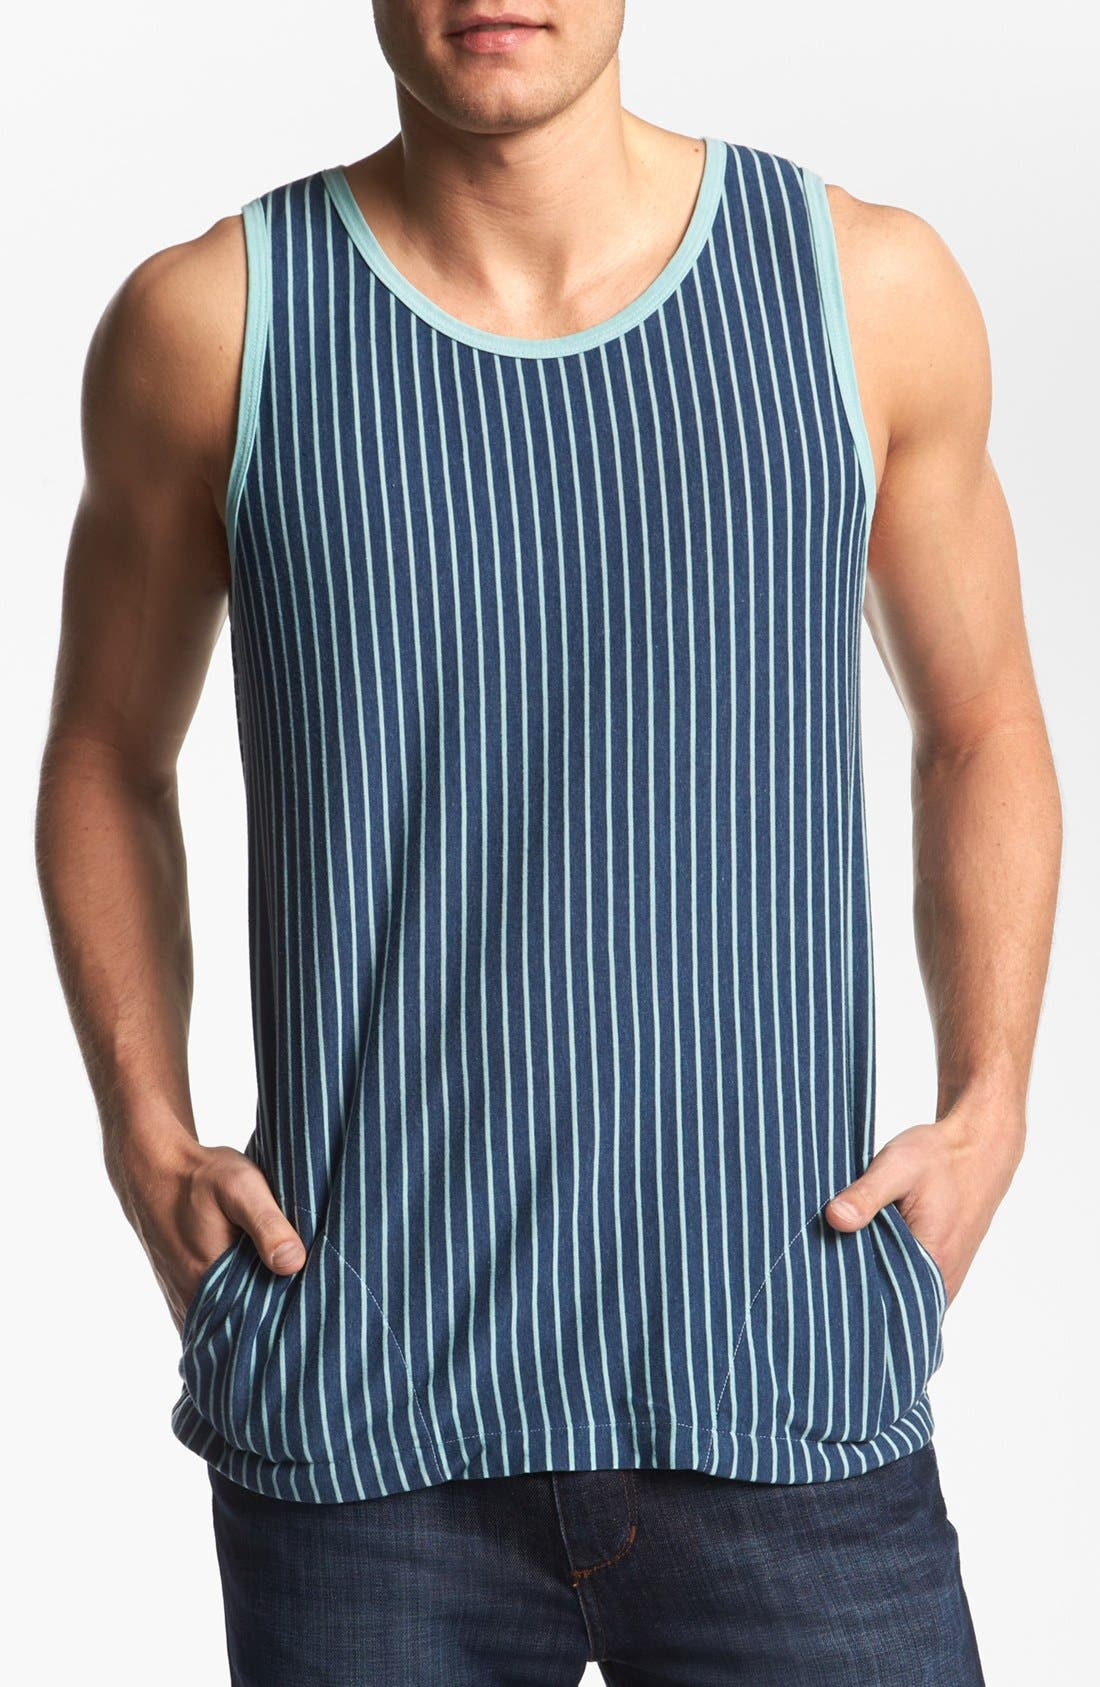 Alternate Image 1 Selected - ambsn 'Pocky' Tank Top